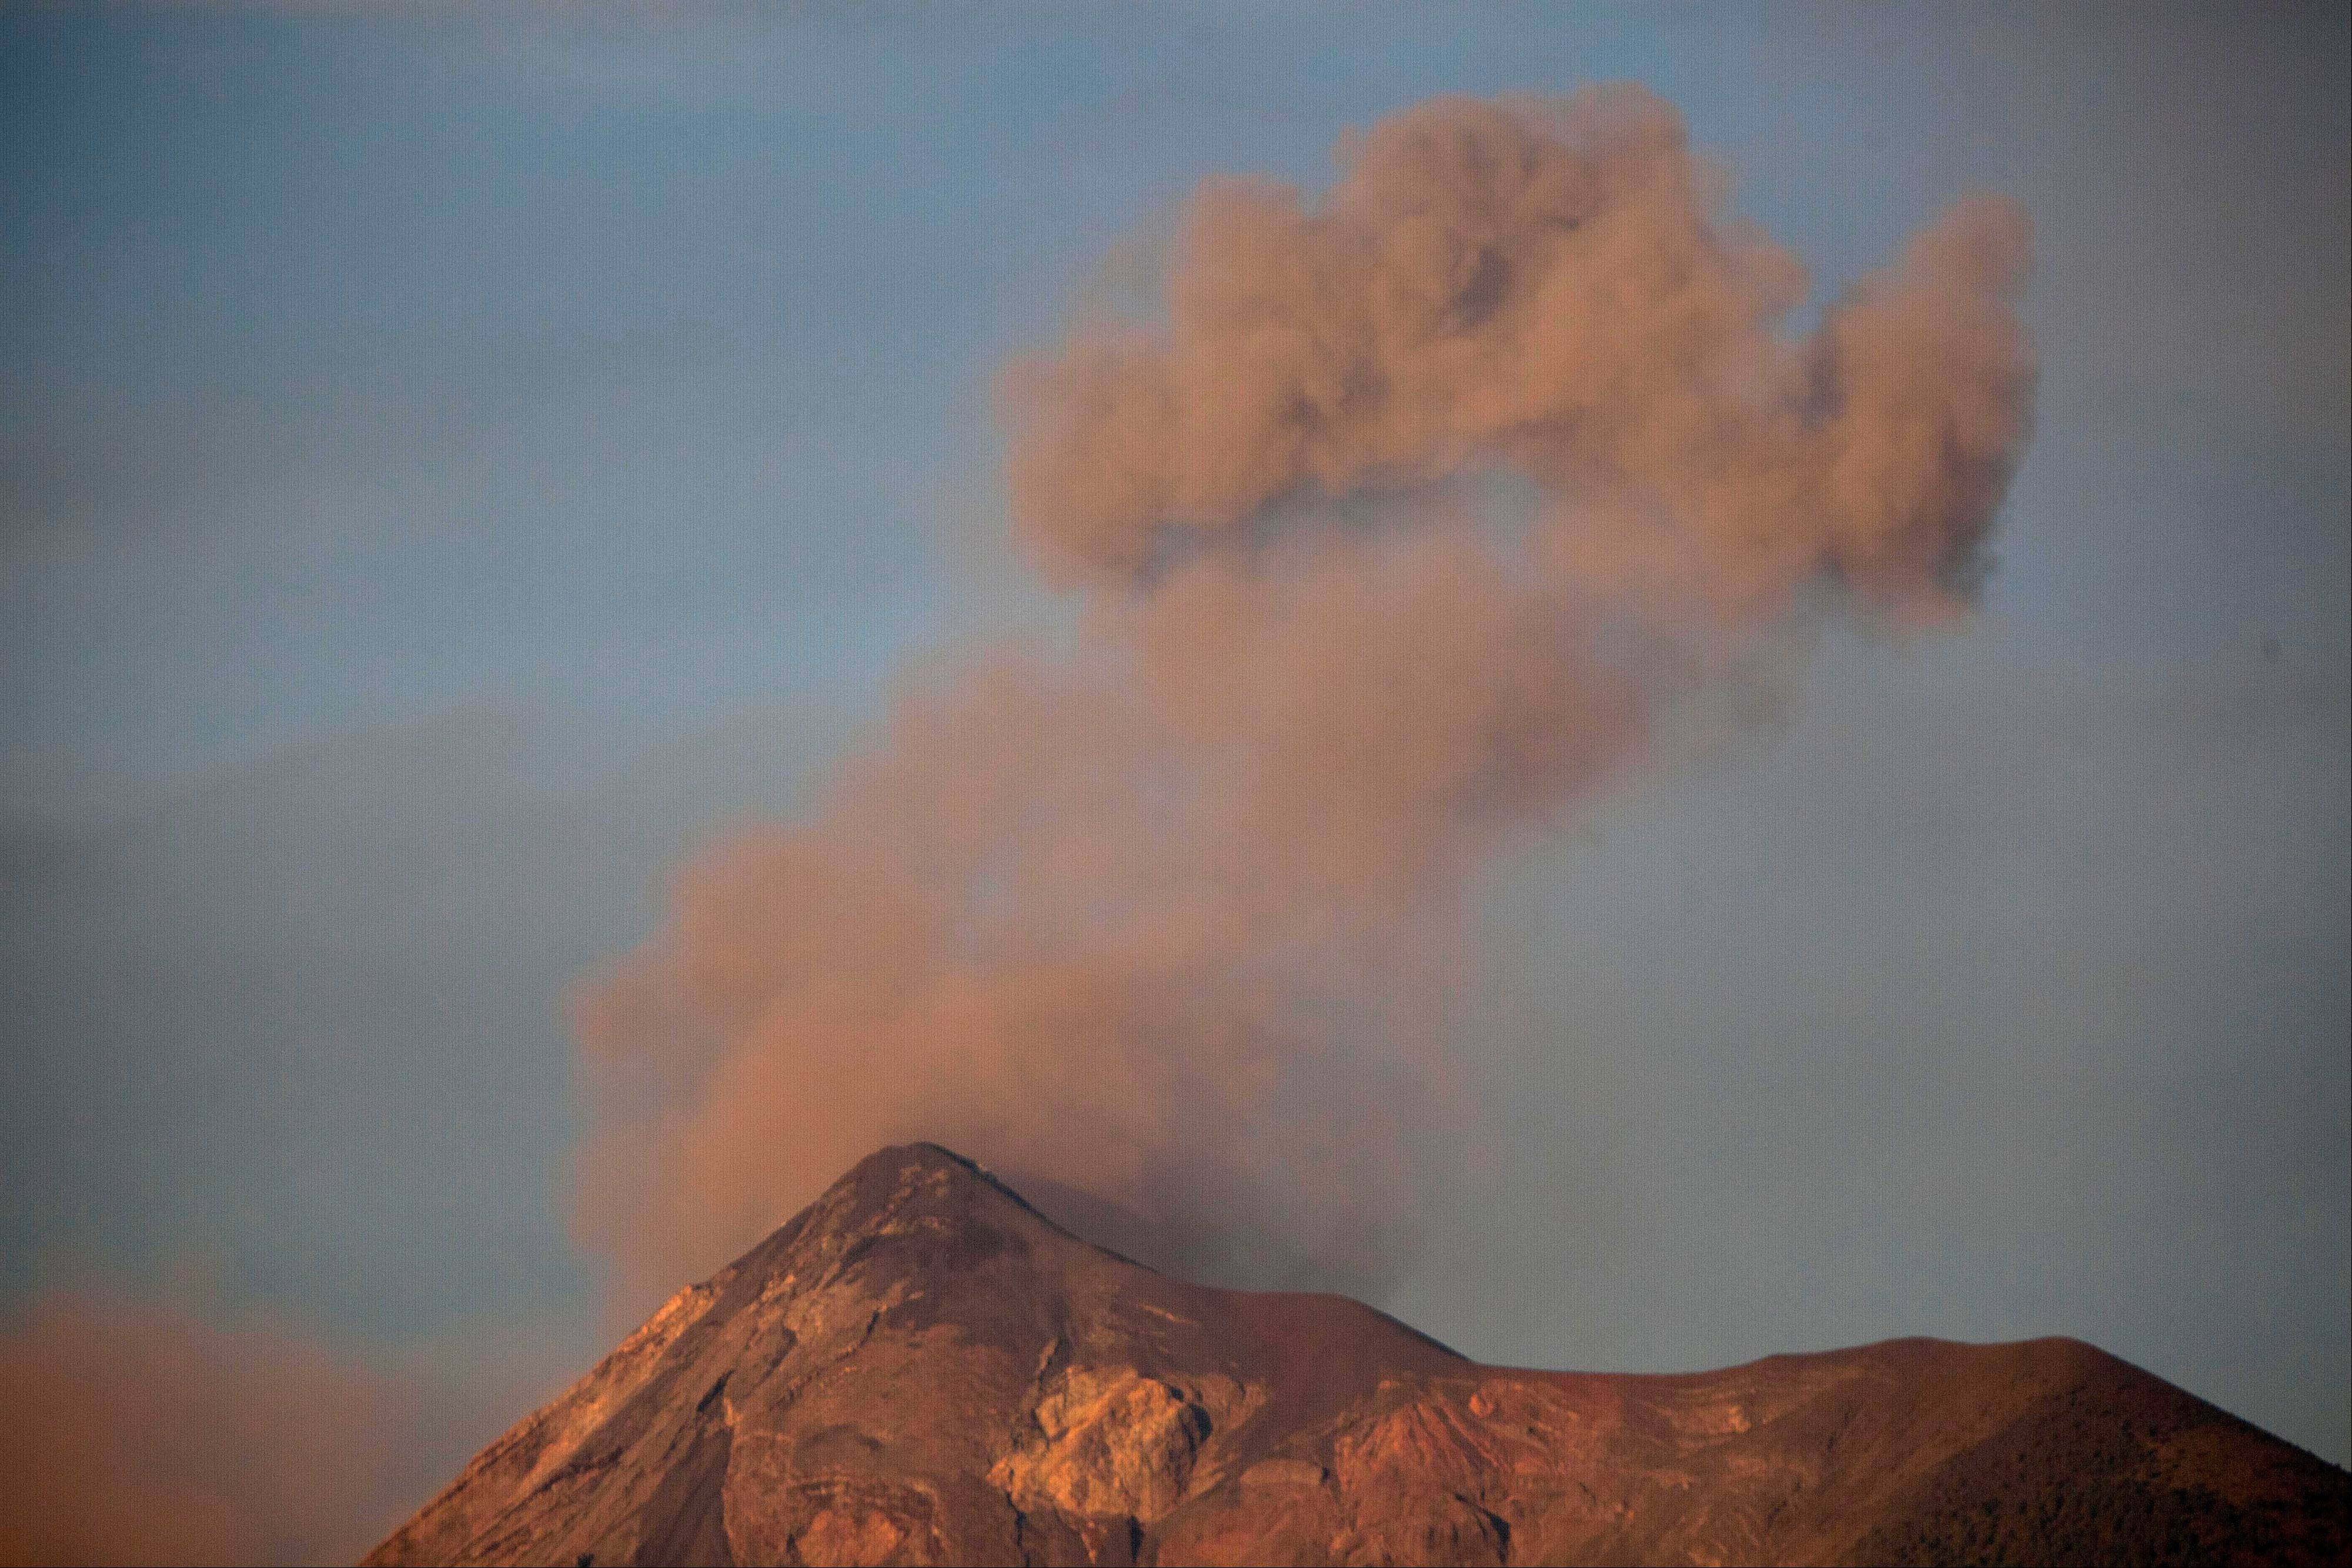 Volcan de Fuego or Volcano of Fire blows outs a thick cloud of ash as seen from Antigua Guatemala, Friday, Sept. 14, 2012. The volcano spewed rivers of bright orange lava down its flanks on Thursday. Authorities ordered more than 33,000 people from nearby communities evacuated.